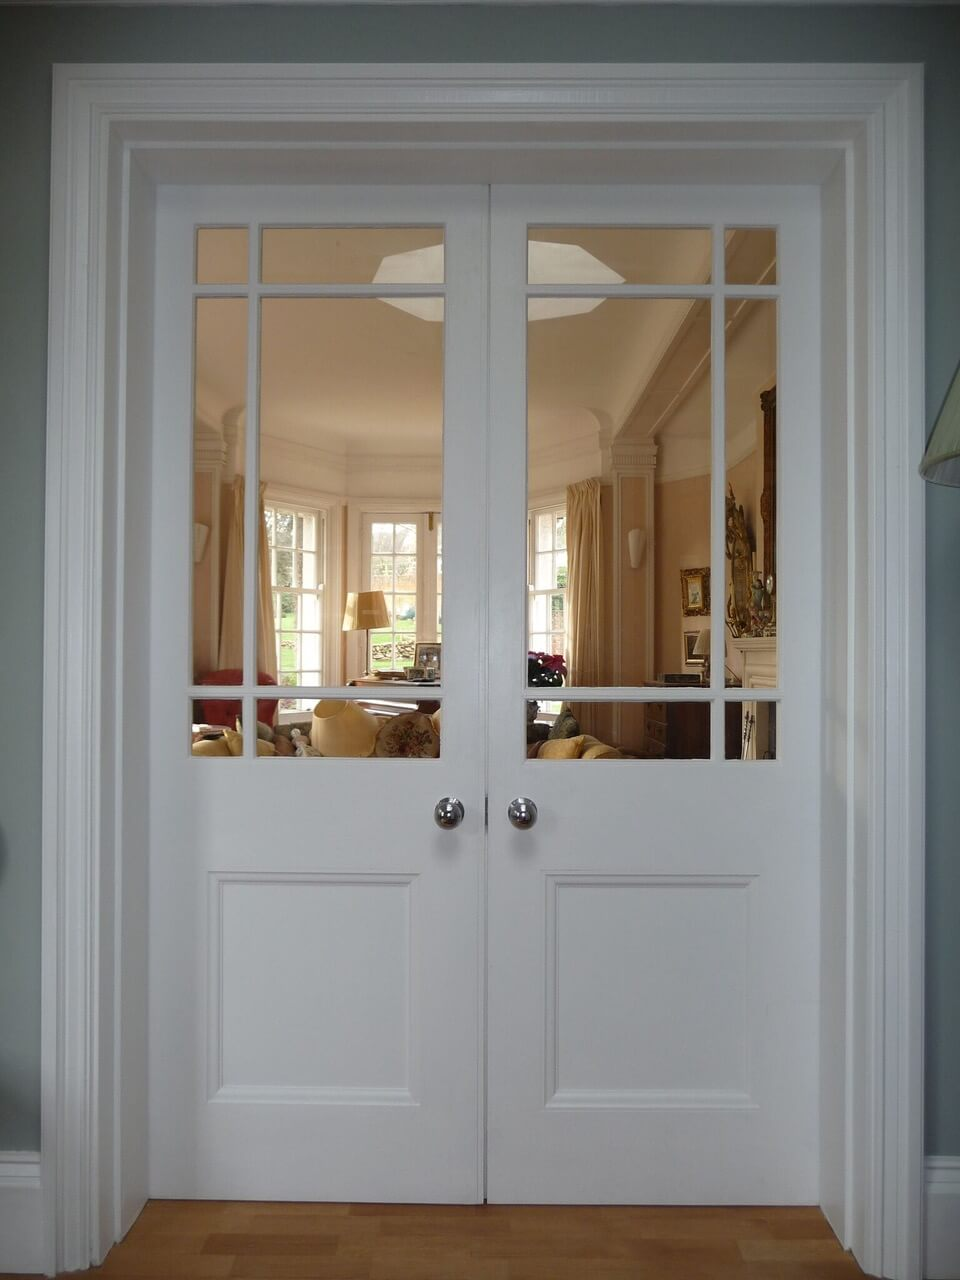 Bespoke French doors, frame and architraves.